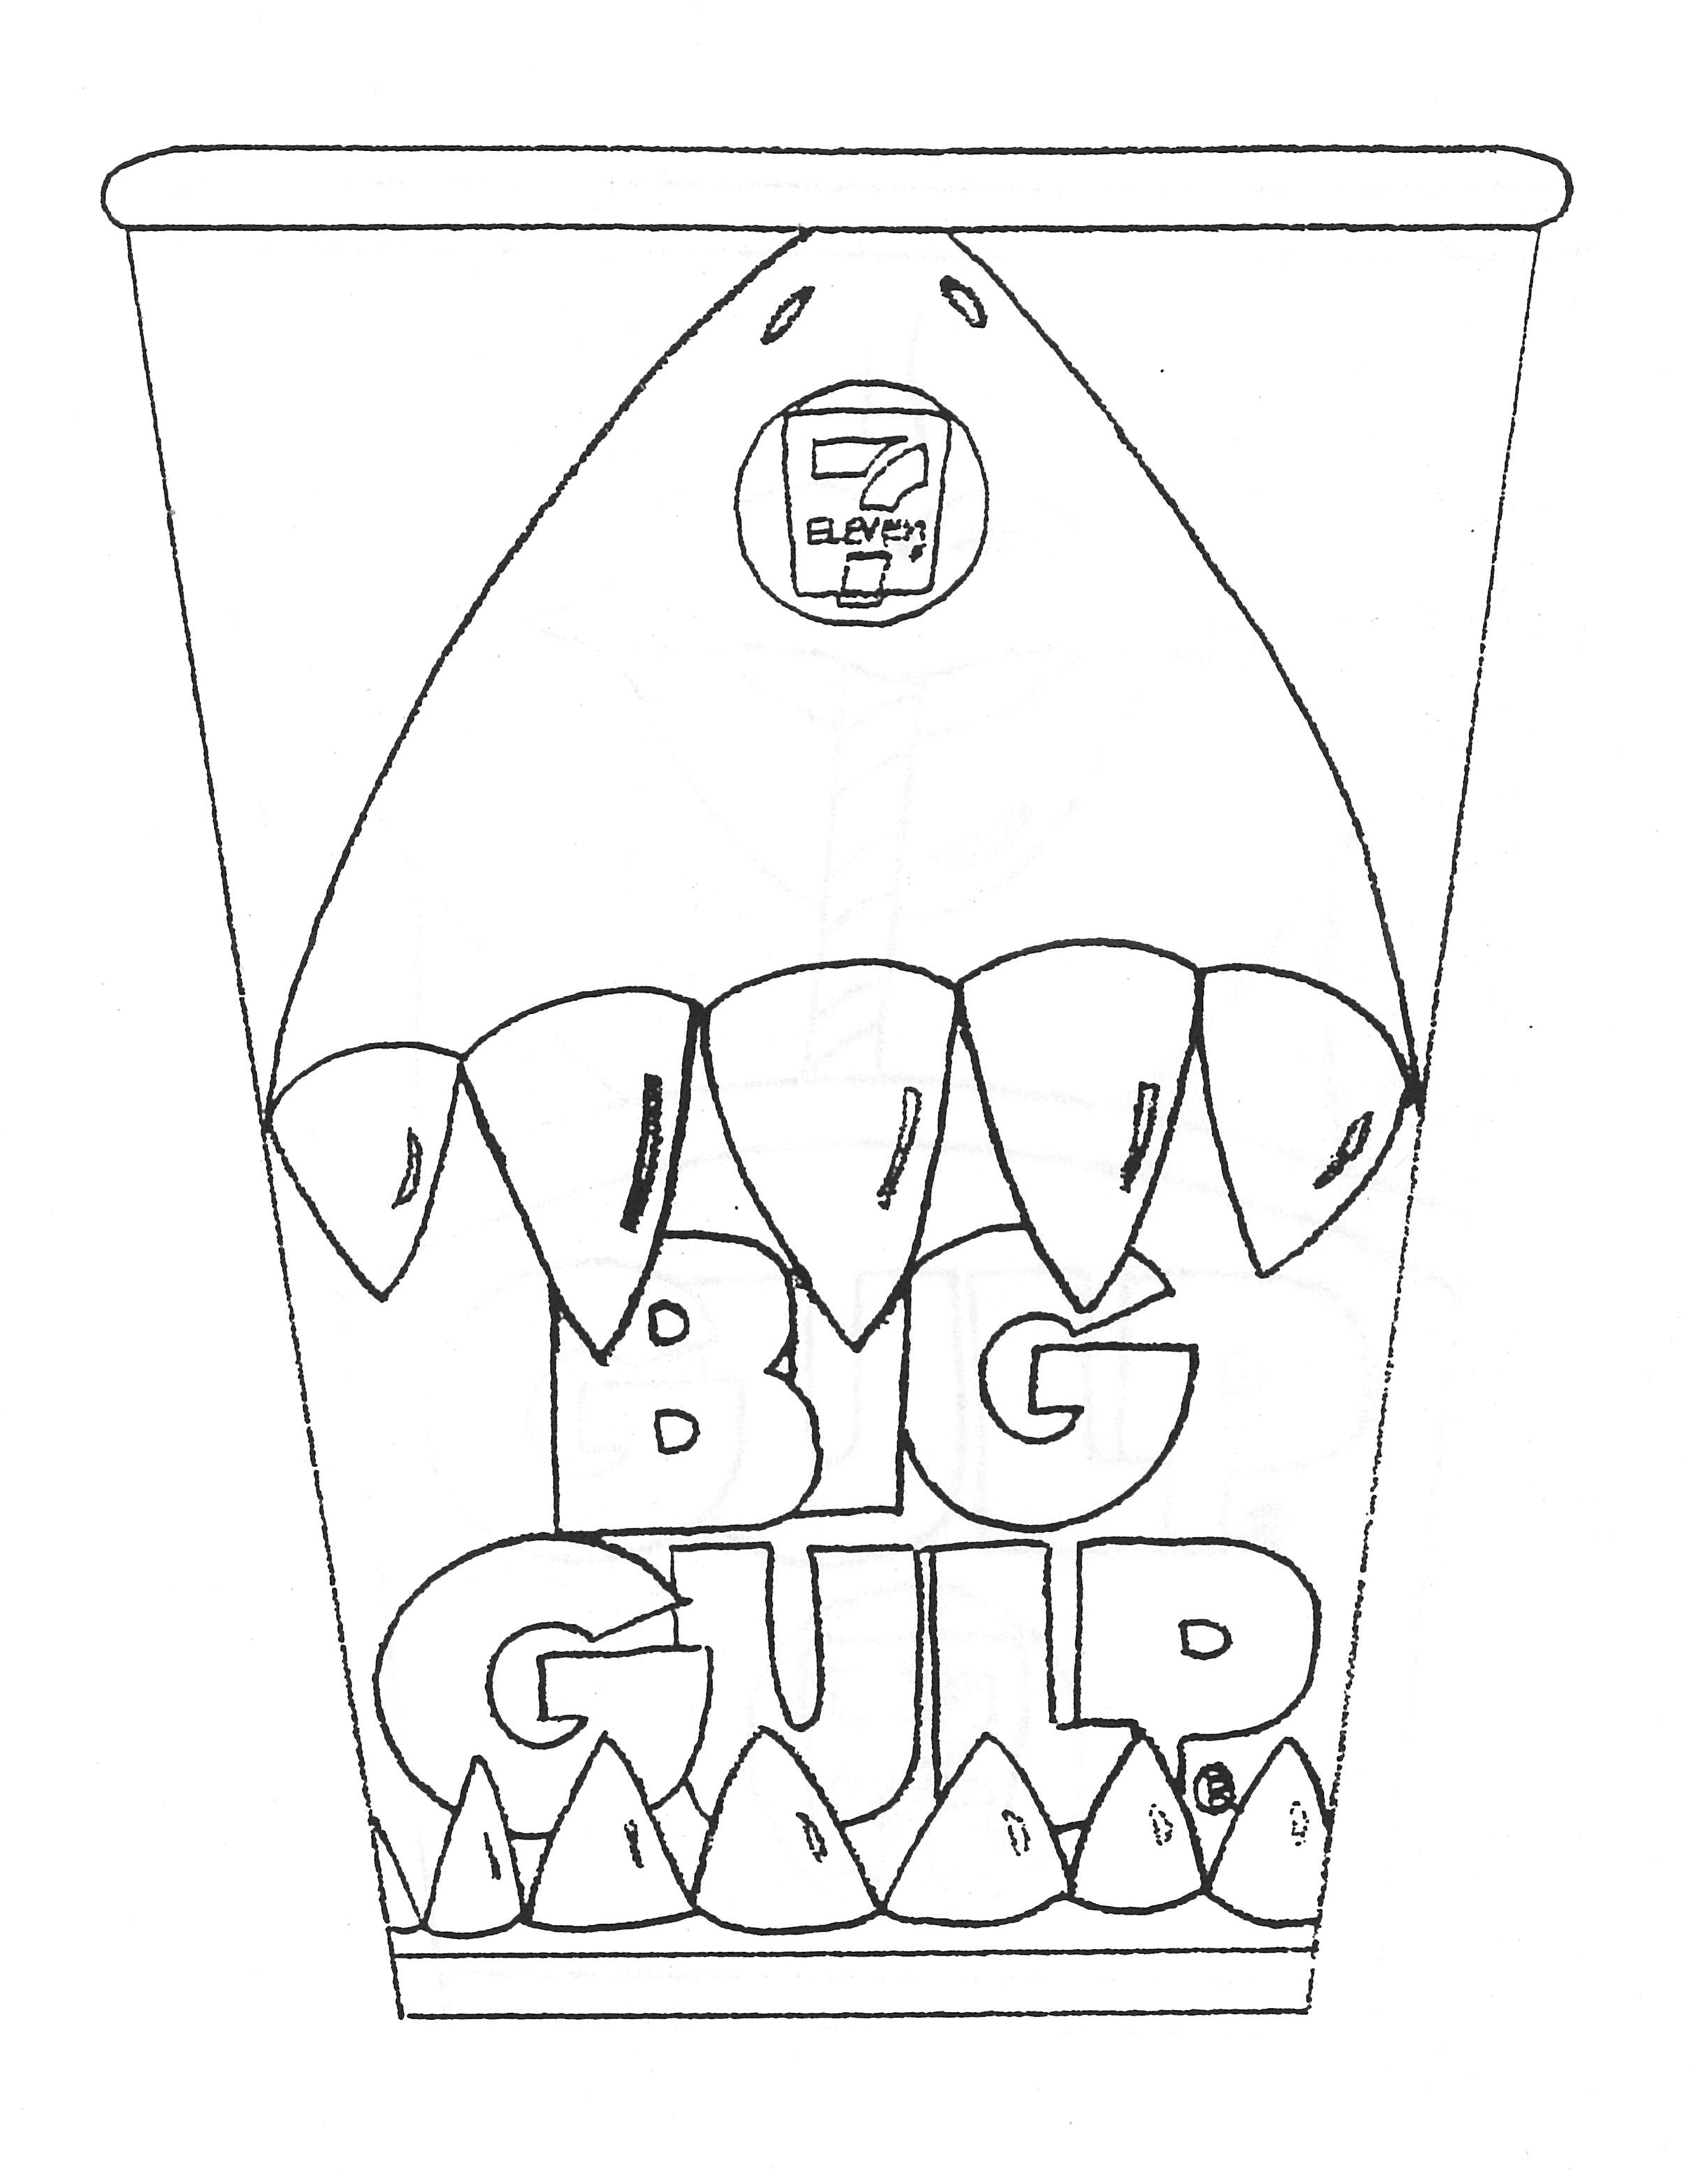 Big Gulp cup sketch